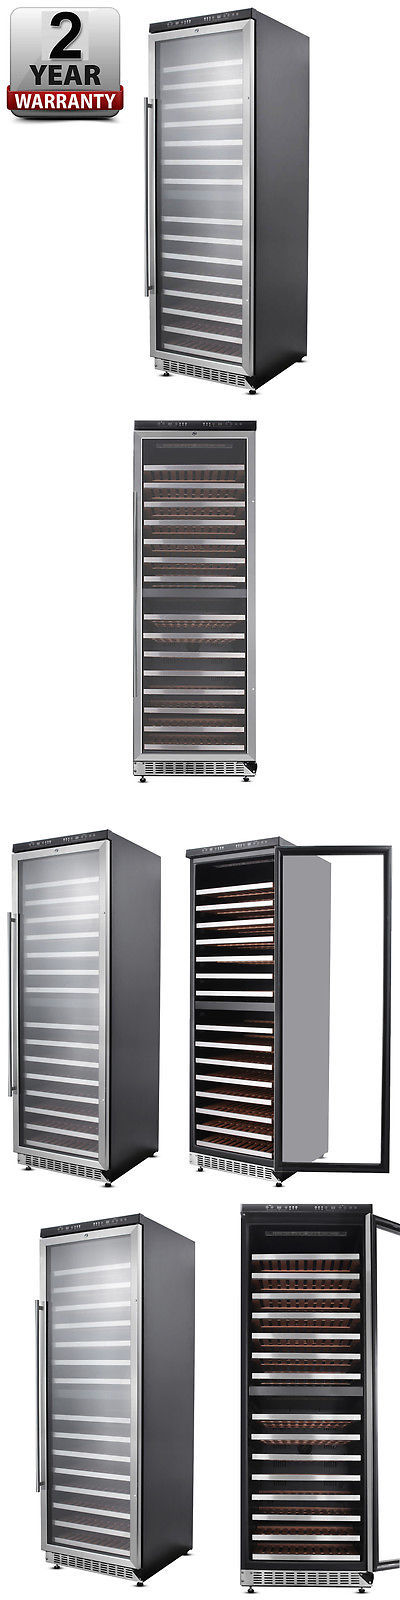 Top 5 Ways To Open A Bottle Of Wine Without A Corkscrew Wine Cellar Wine Fridge Built In Wine Cooler Wine Wall